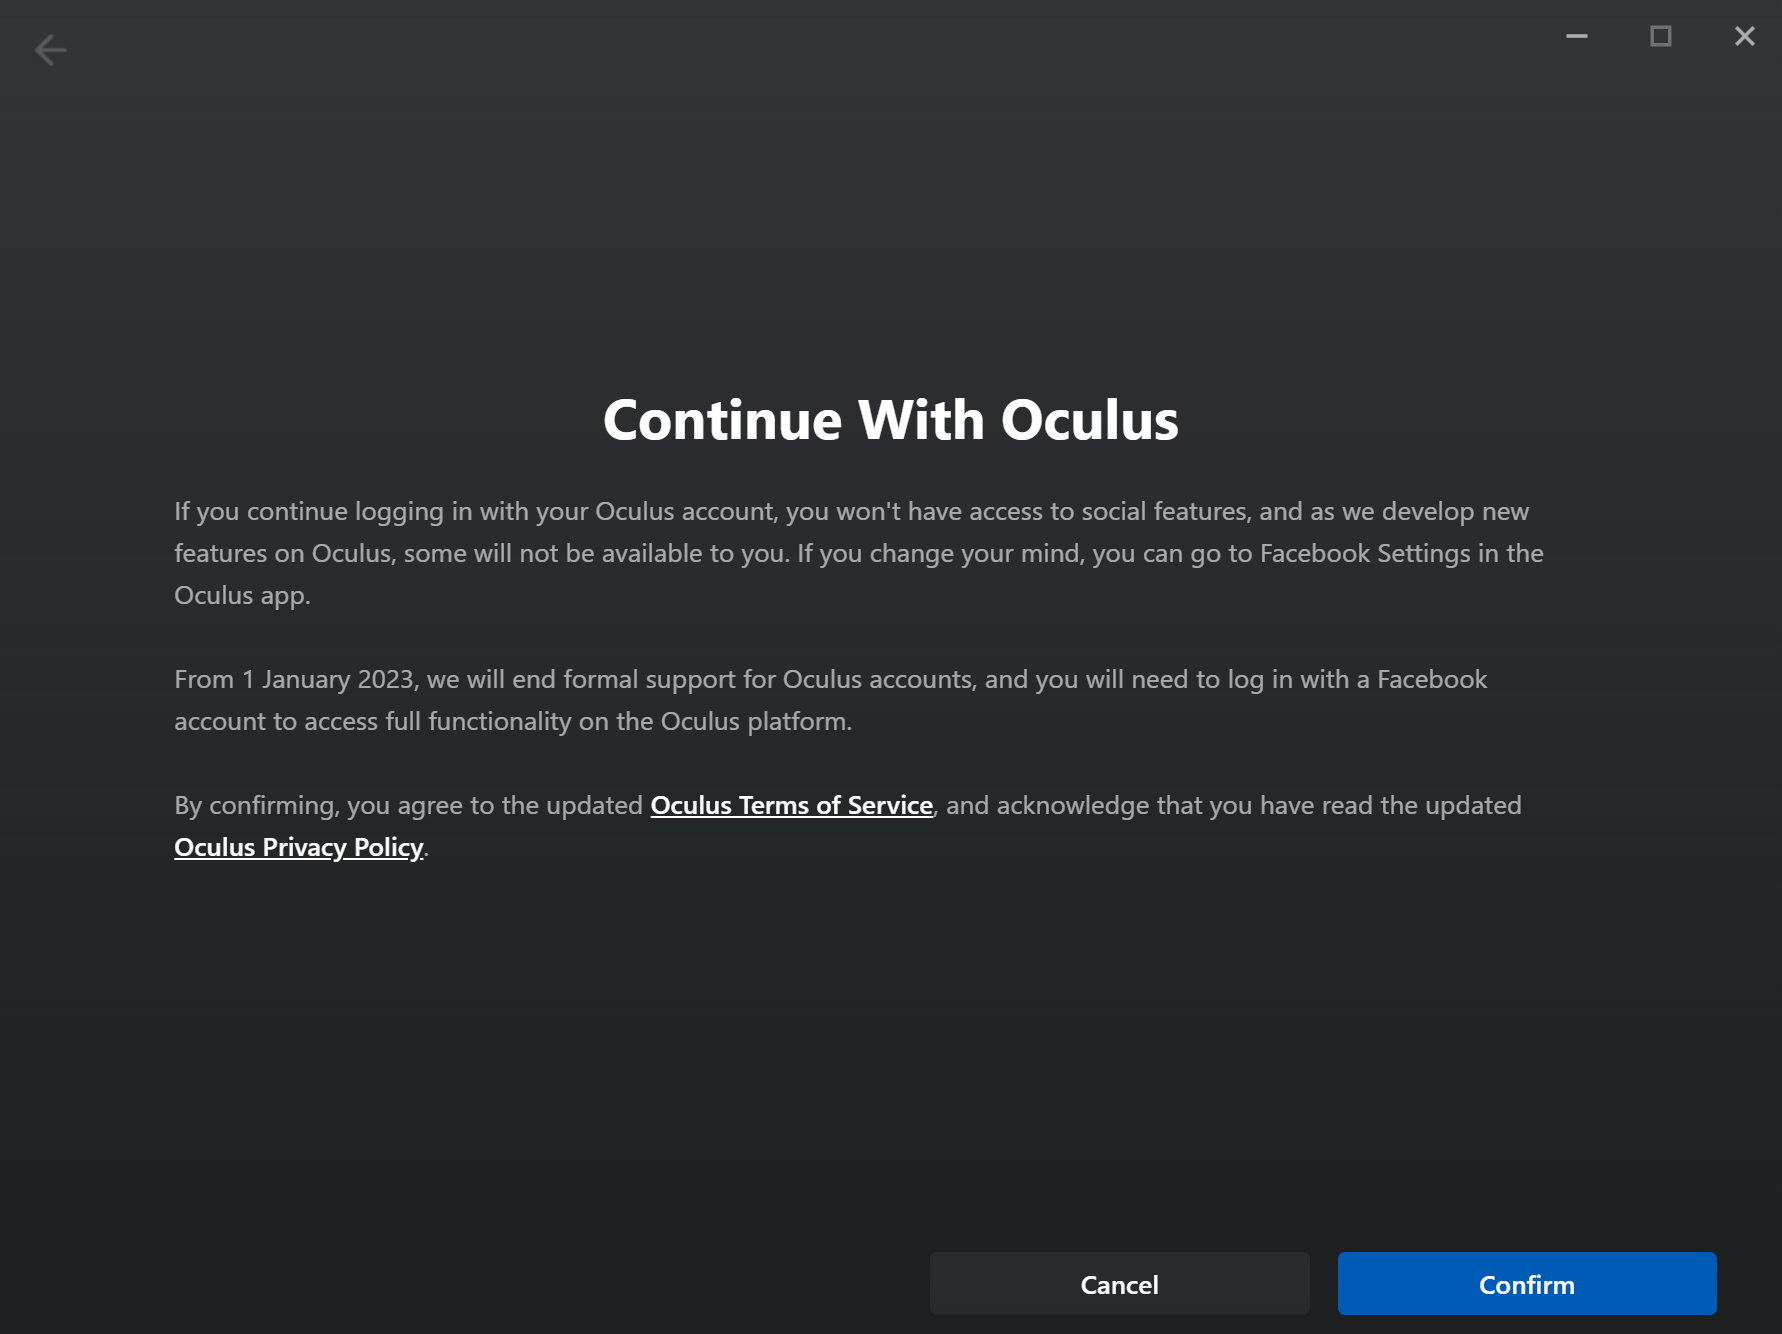 Facebook Account required for Oculus Rift - Fuck that!